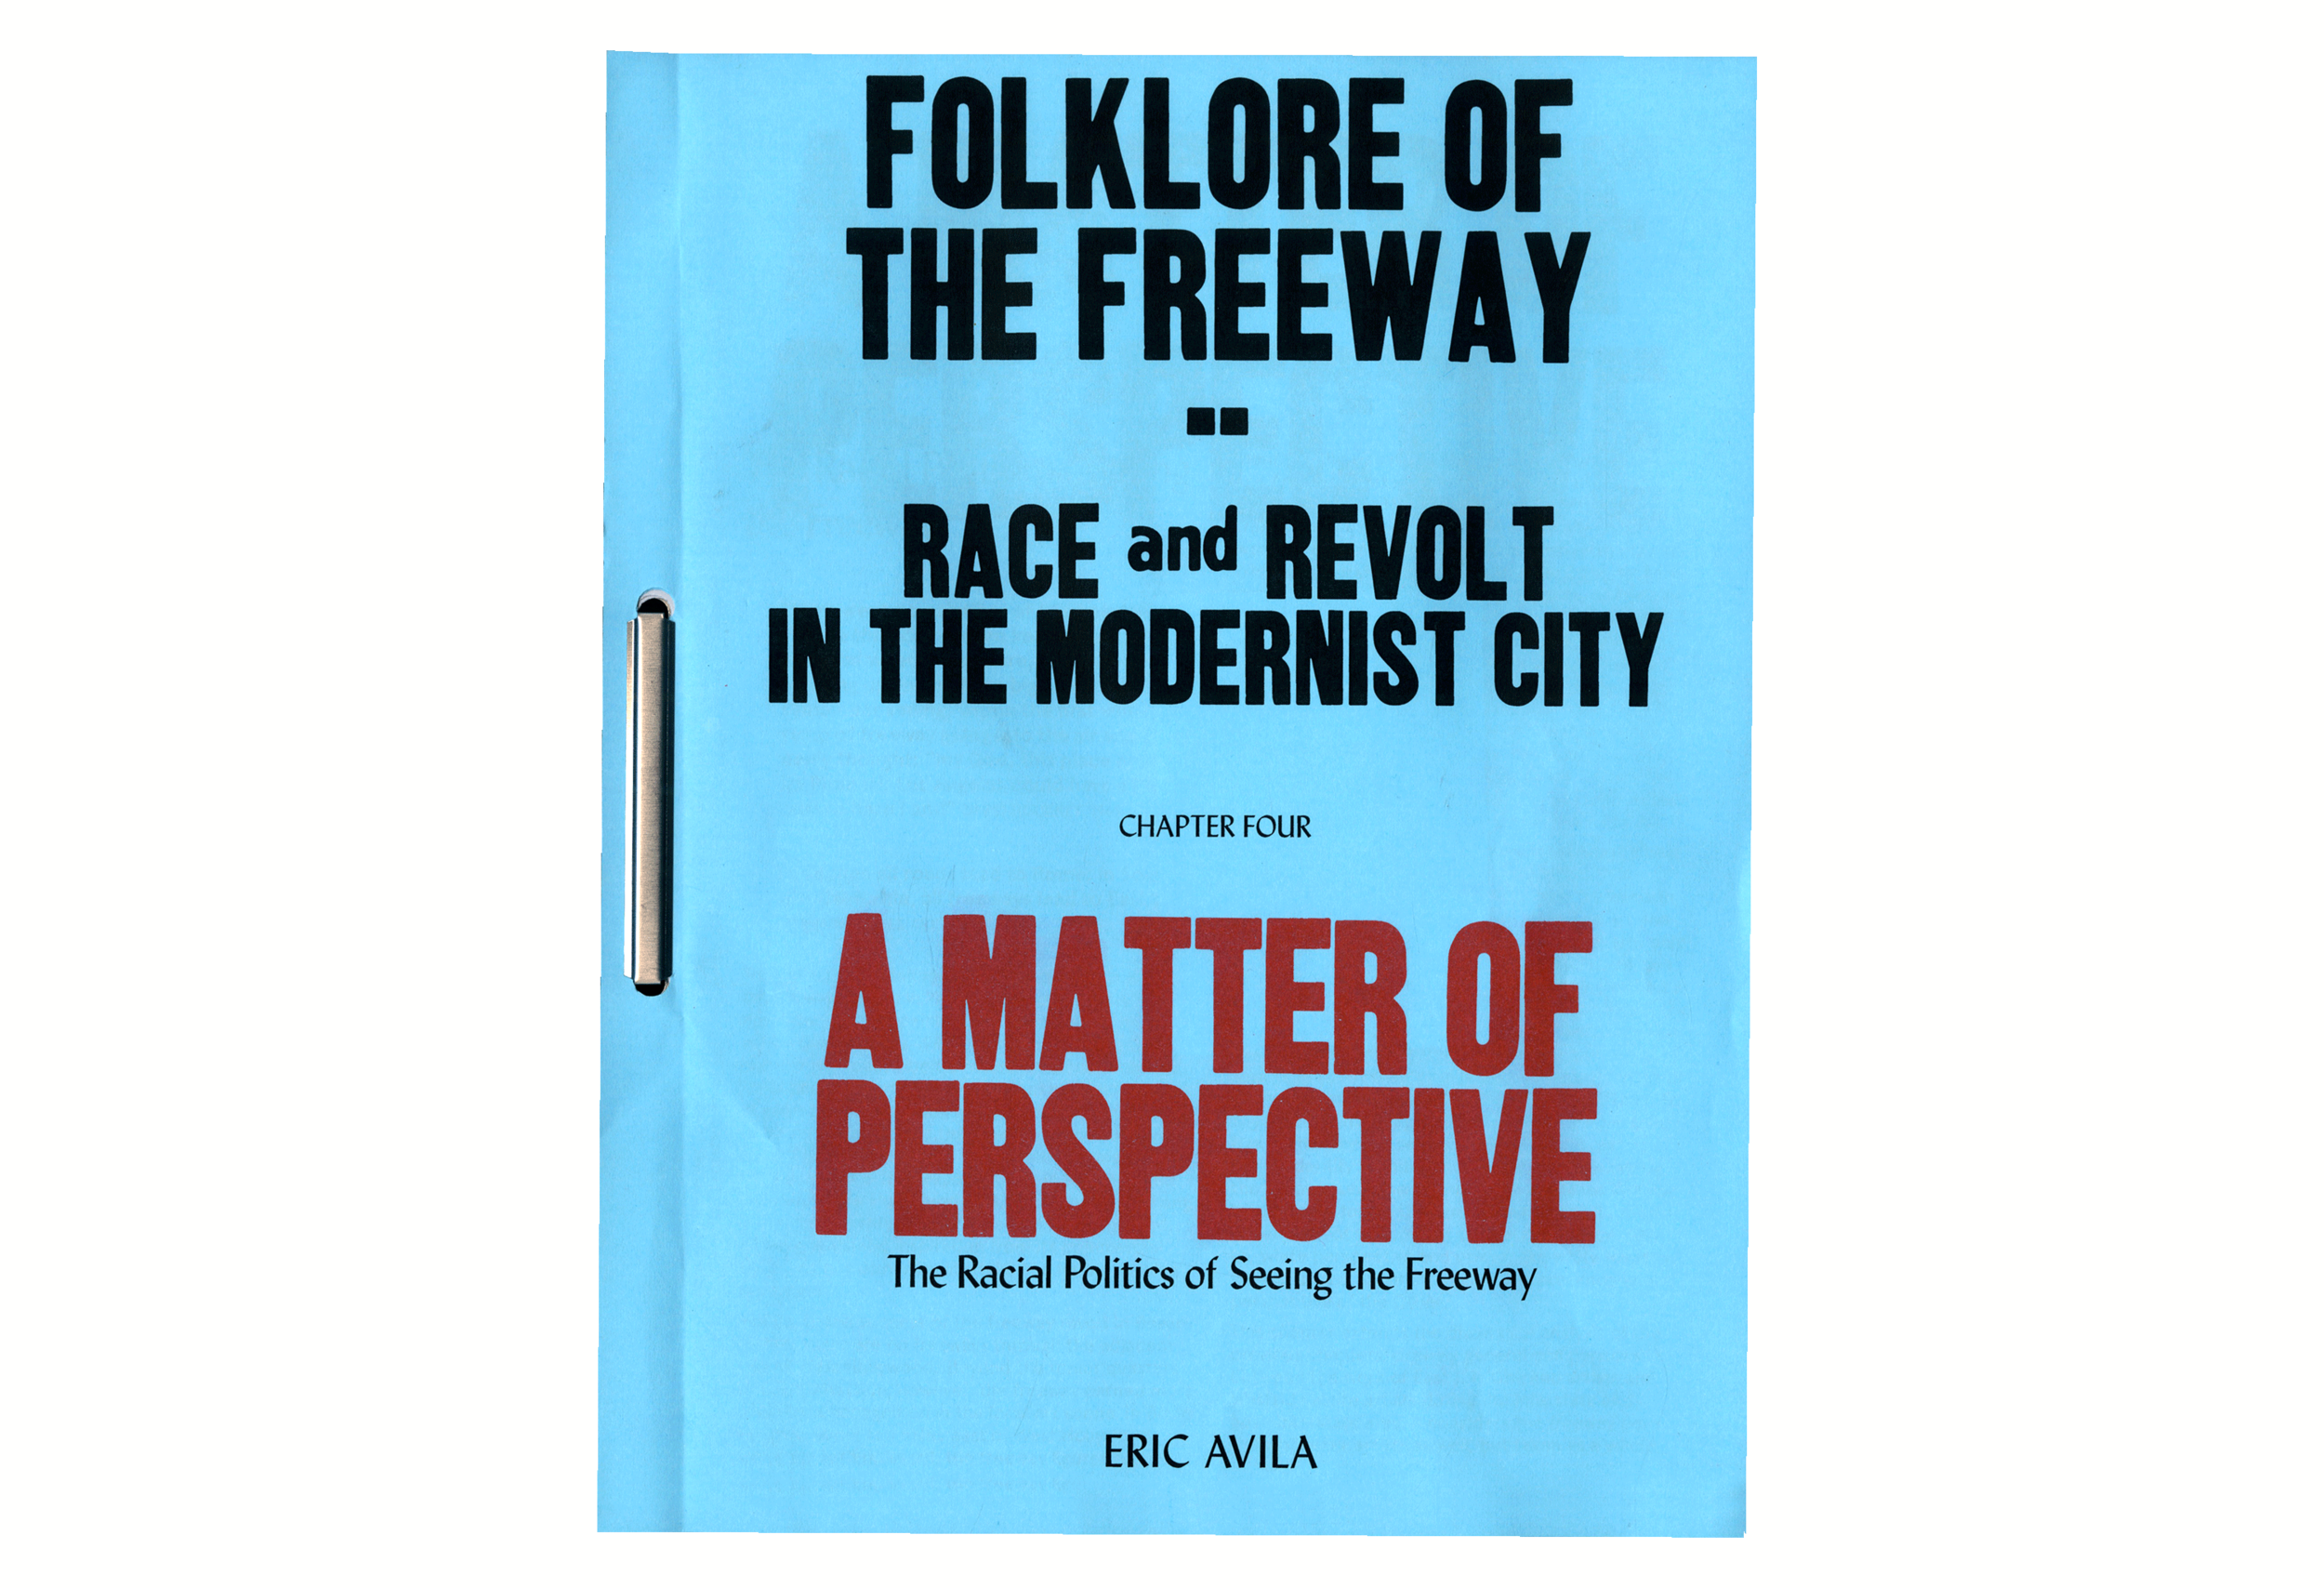 Coming Soon: Folklore of the Freeway - Rapid Nostalgia No. 008